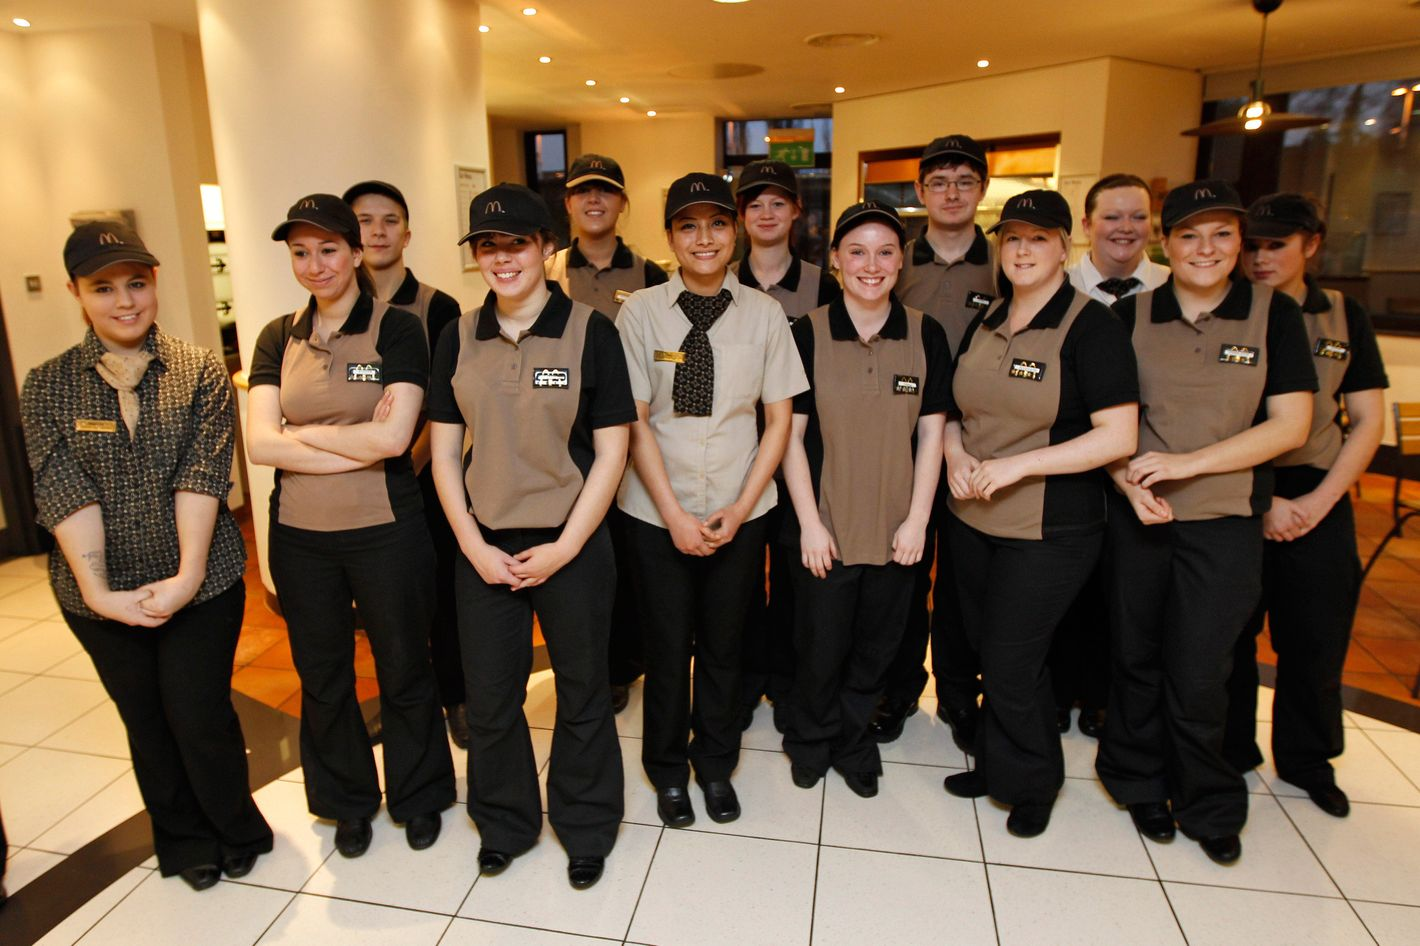 McDonald's staff pose for a photo during a visit from Britain's Deputy Prime Minister Nick Clegg at a training session at the McDonald's Training Center on January 24, 2012 in London, England. McDonald's announced today at least 2,500 new UK jobs this year would be created by the fast food giant. The burger chain expects more than a half of the new posts to go to young people and around 30 percent to first-time workers.